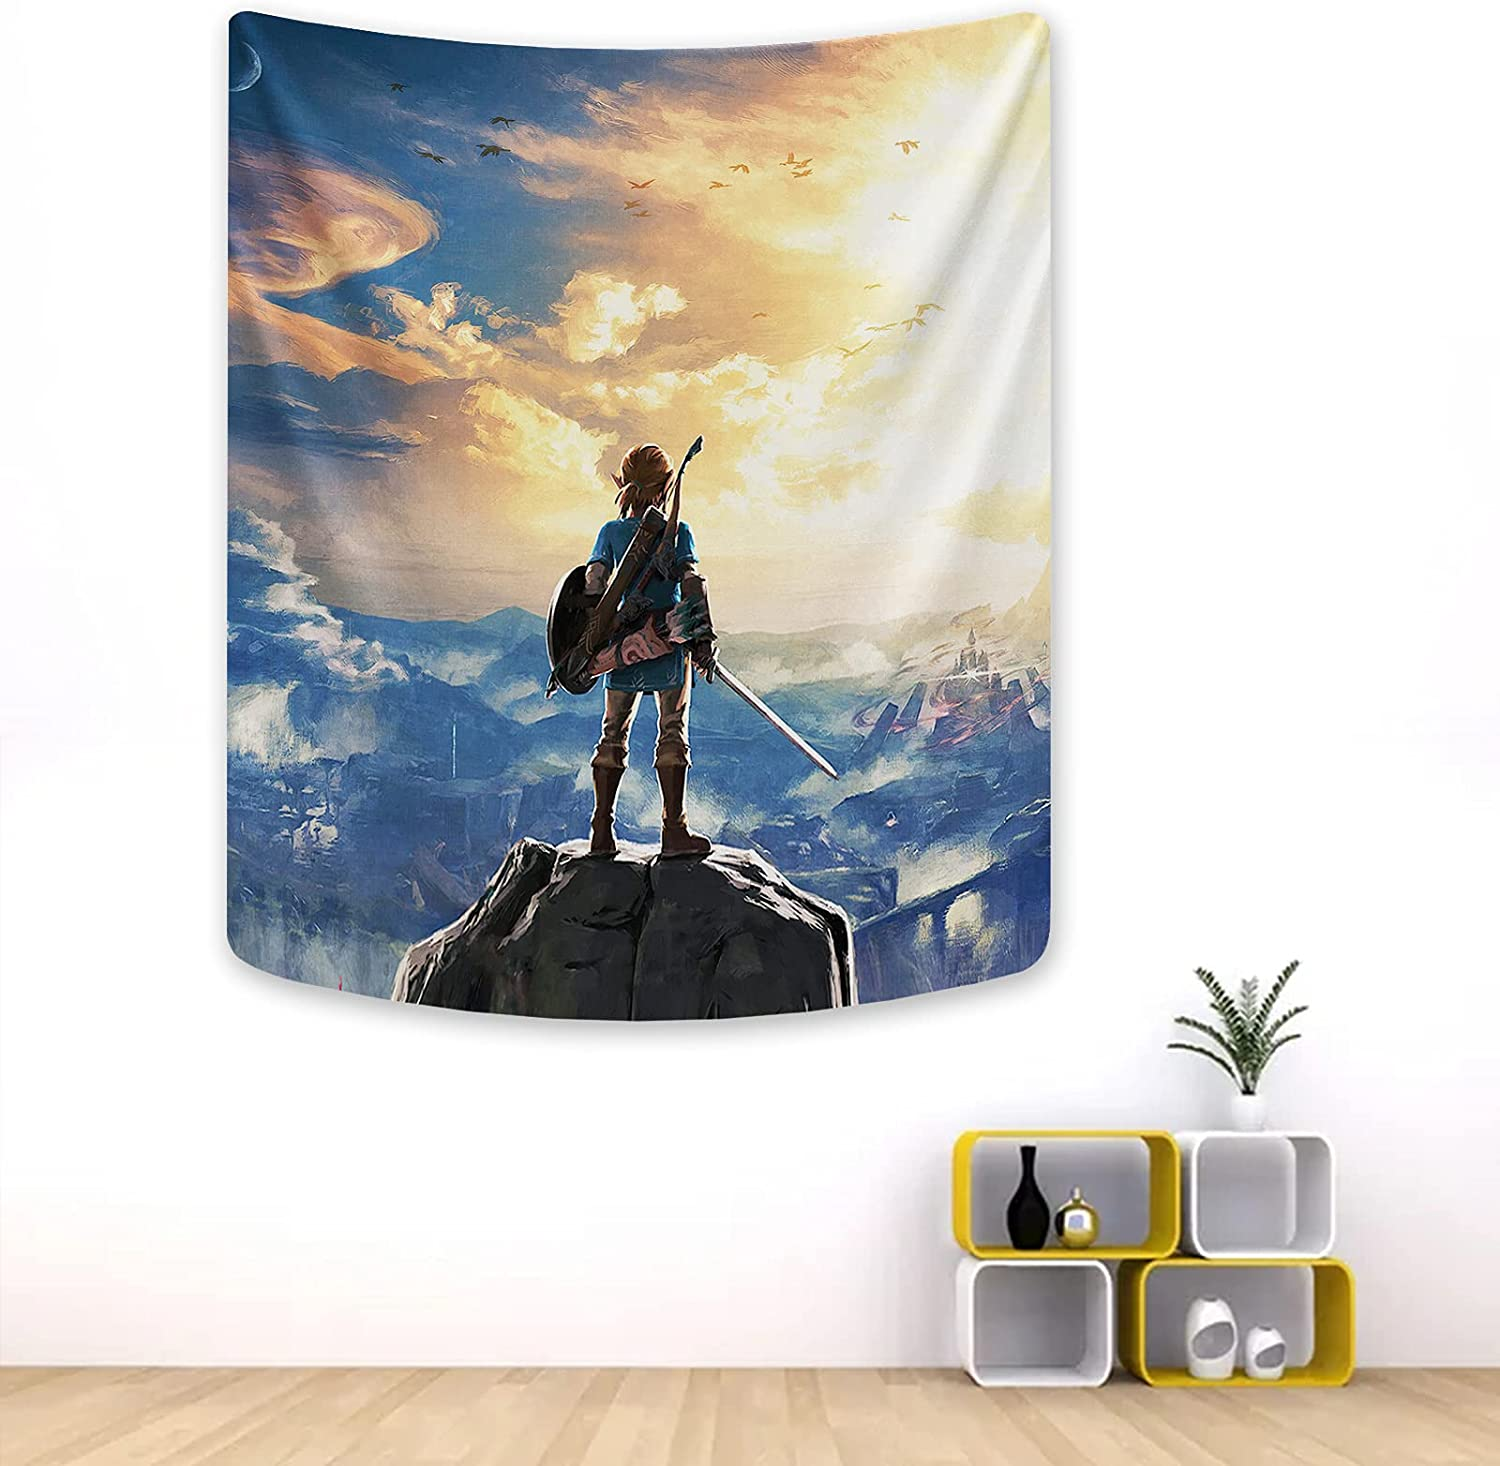 Legend of Ze_lda Tapestry Game Poster Backdrop for Bedroom Dorm Room Birthday Party Decoration 50x60in